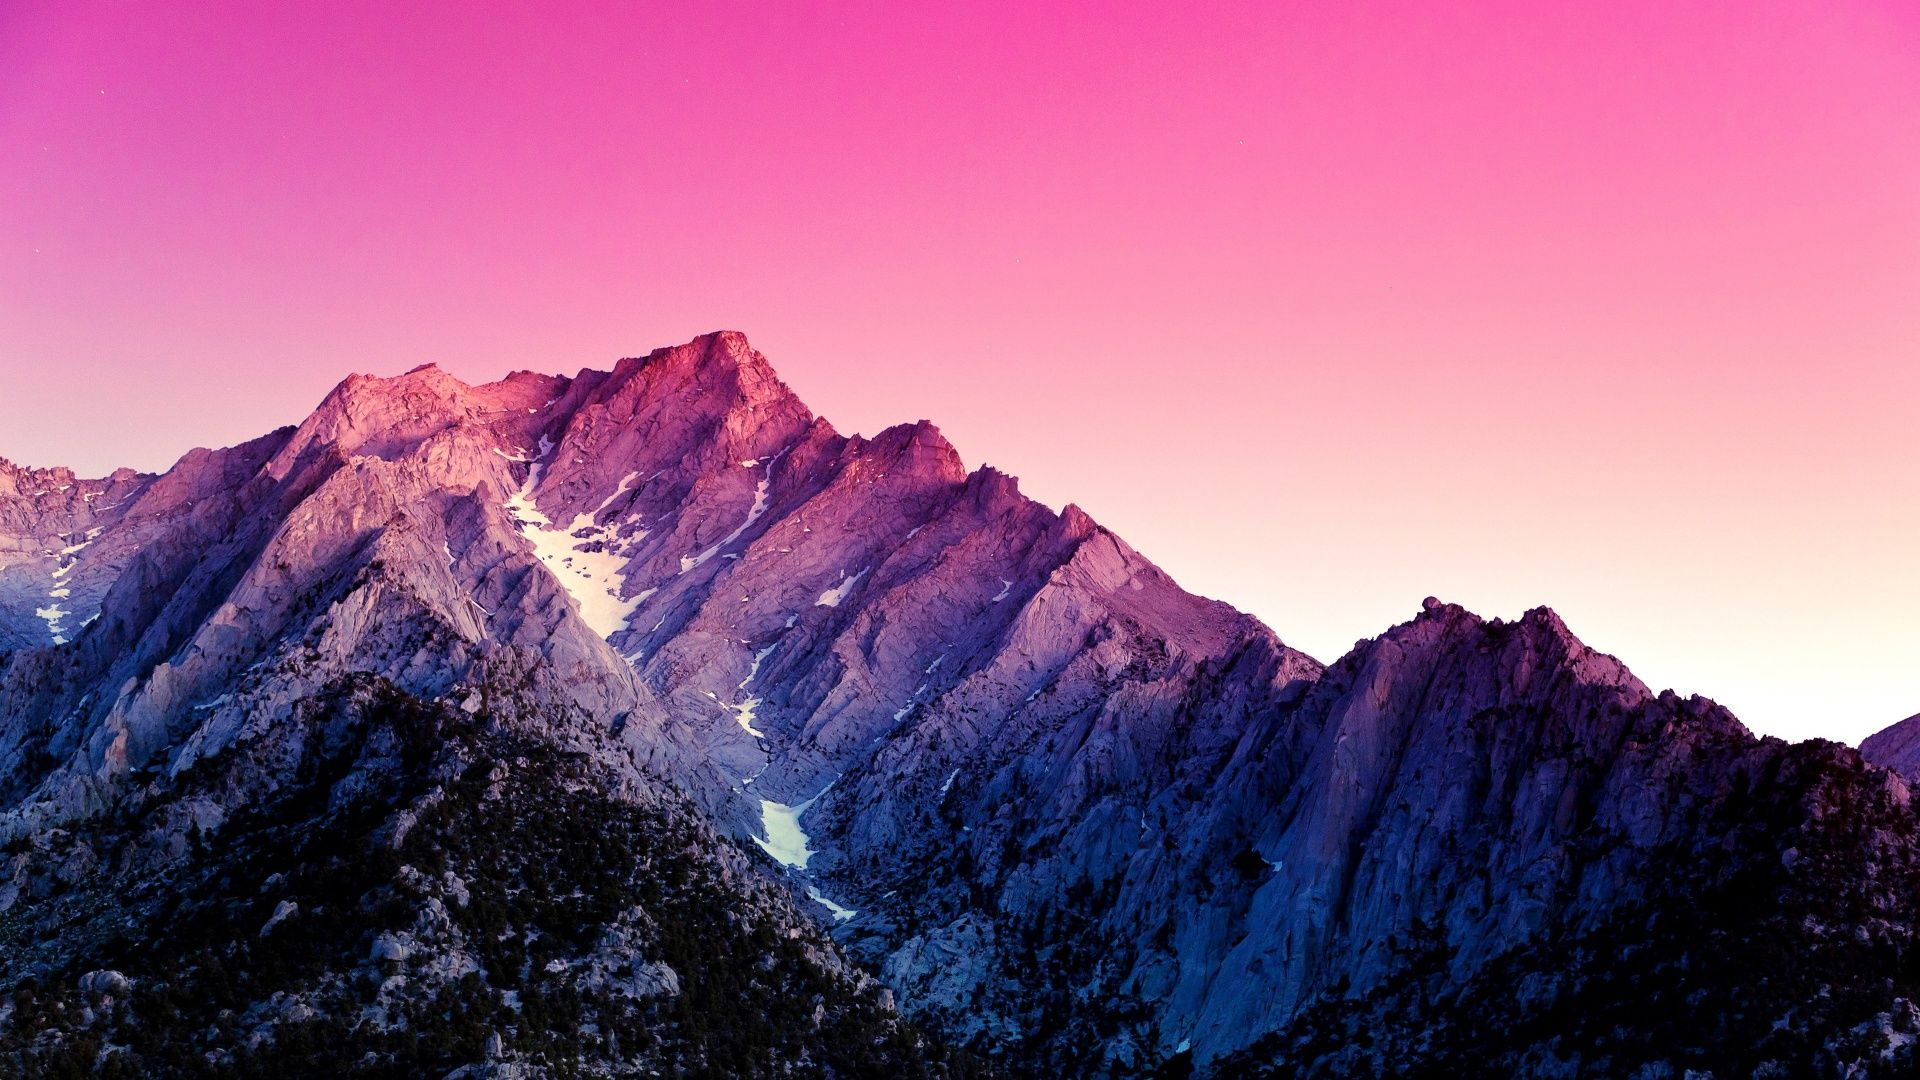 Pink Mountains 1920x1080 Wallpapers In 2019 Mountain